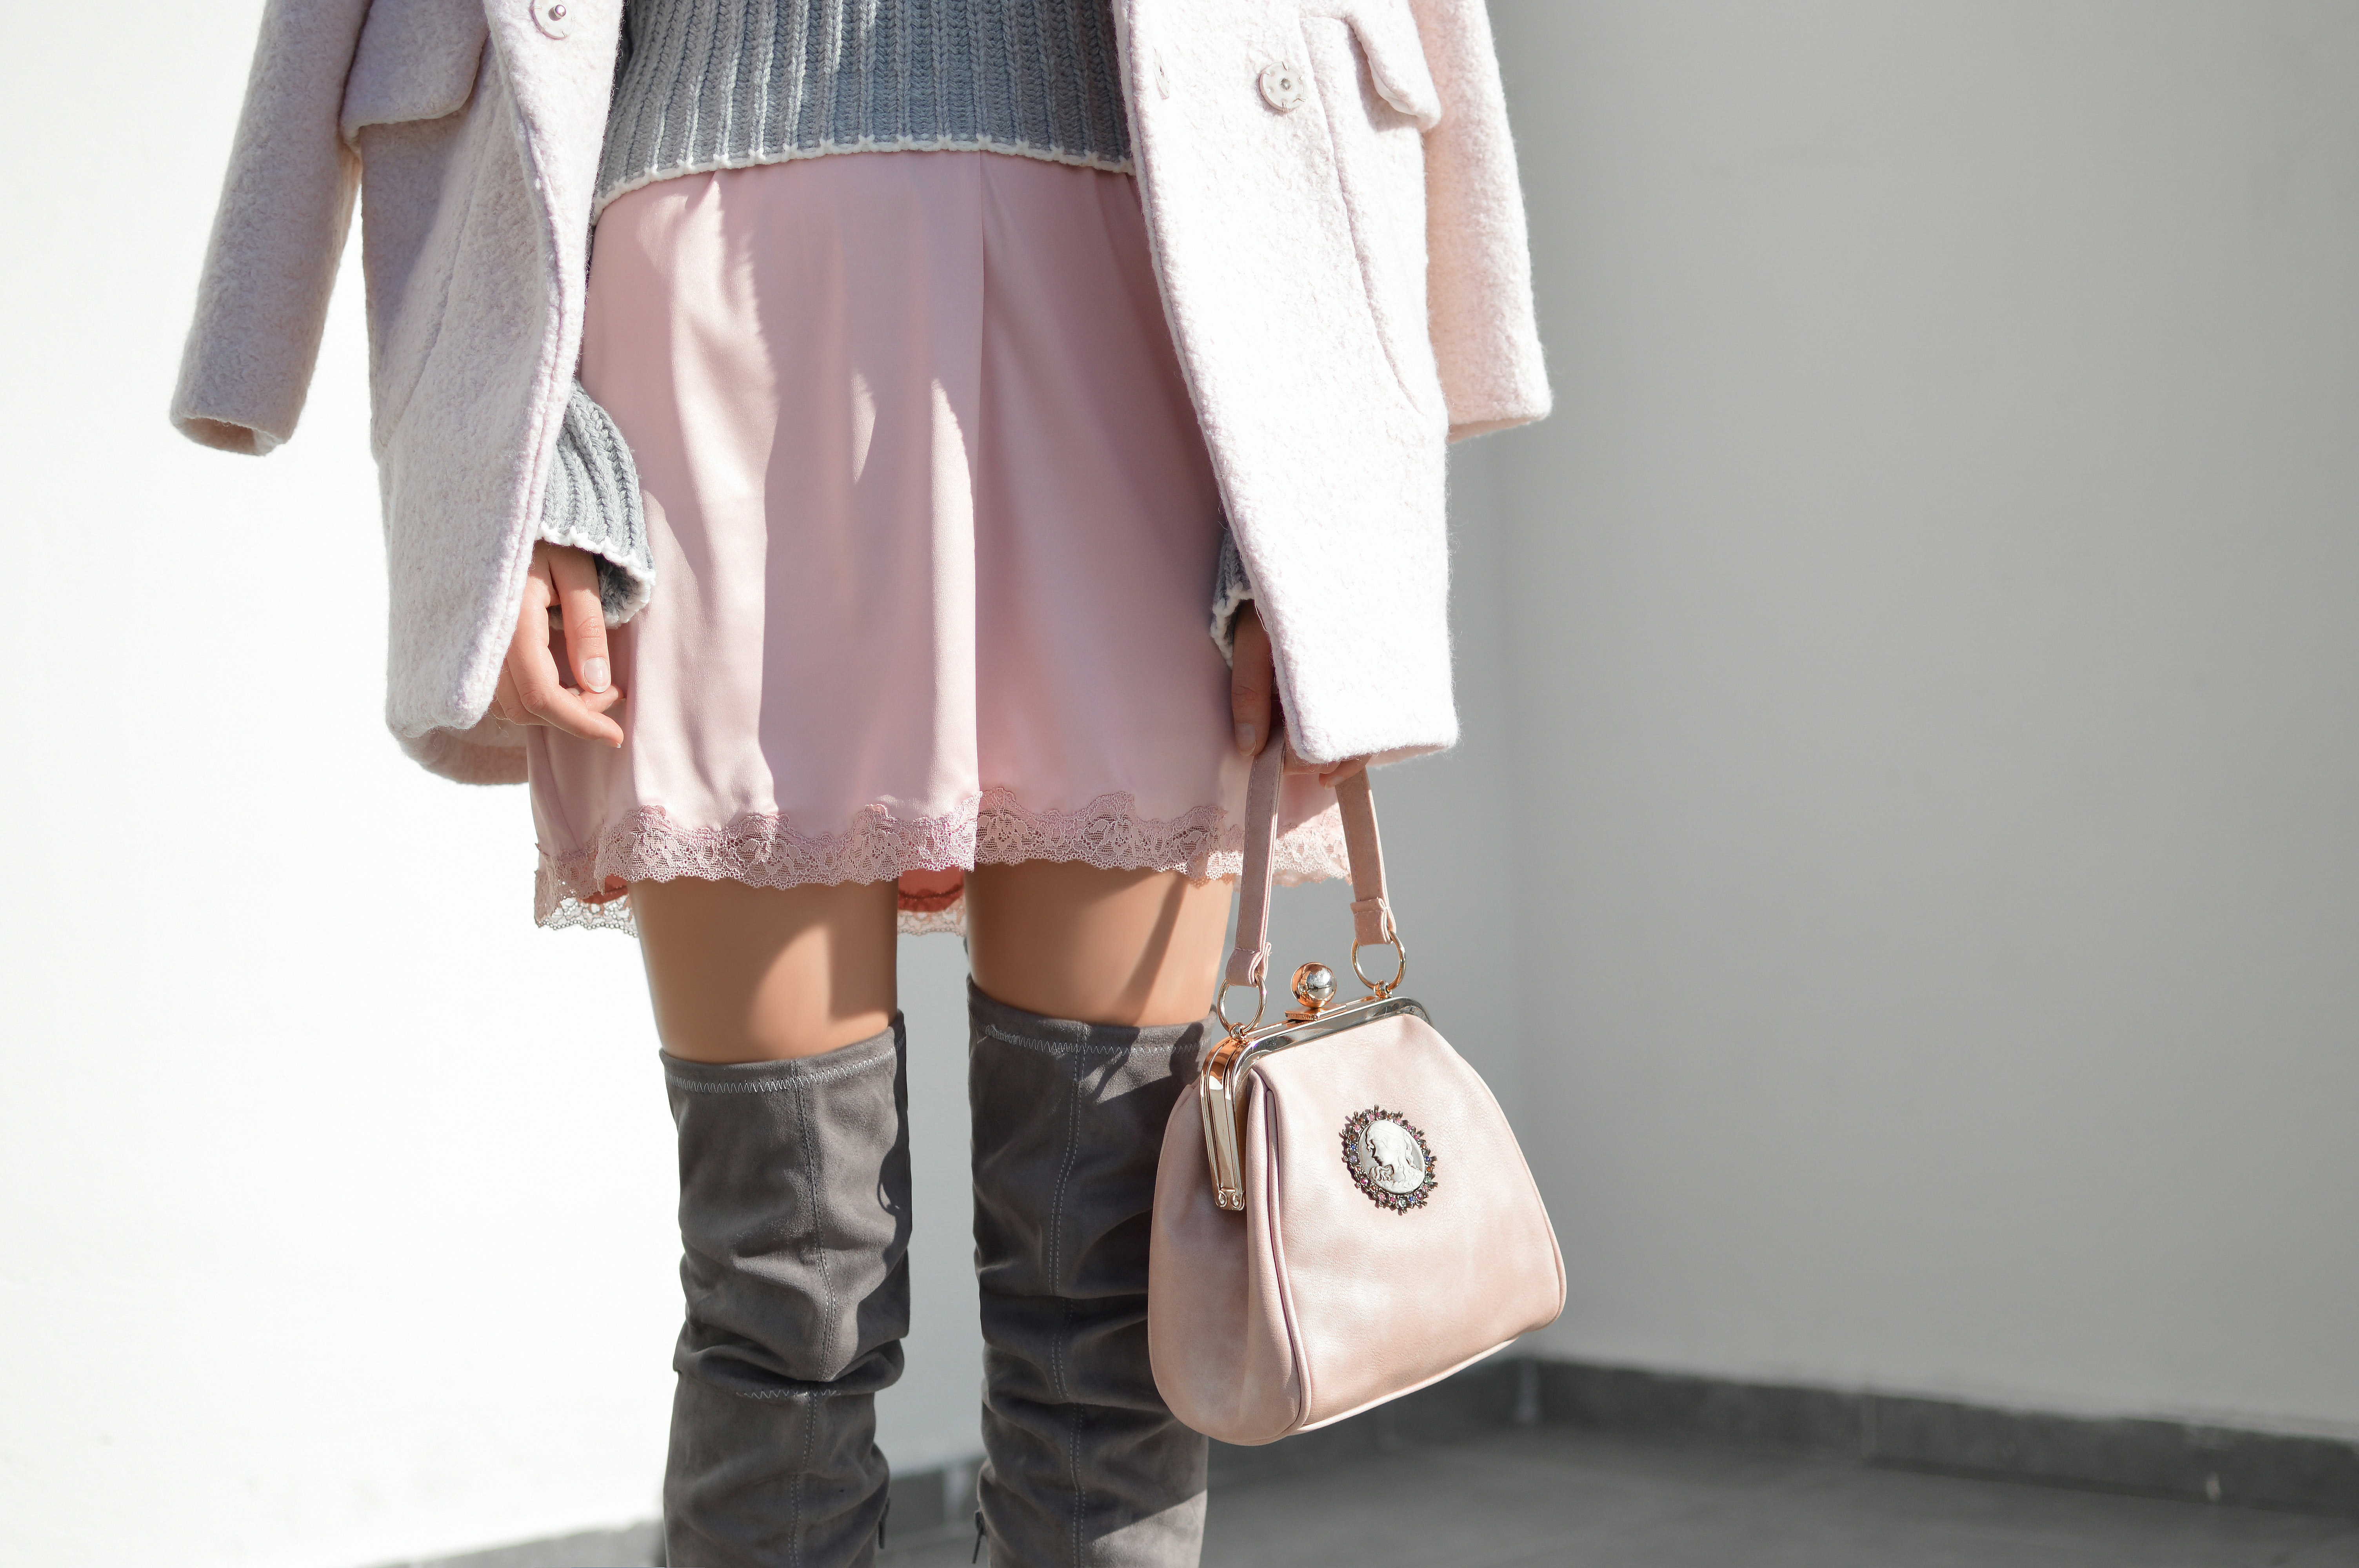 A woman in a pink skirt, long boots and a jacket carrying a pink handbag